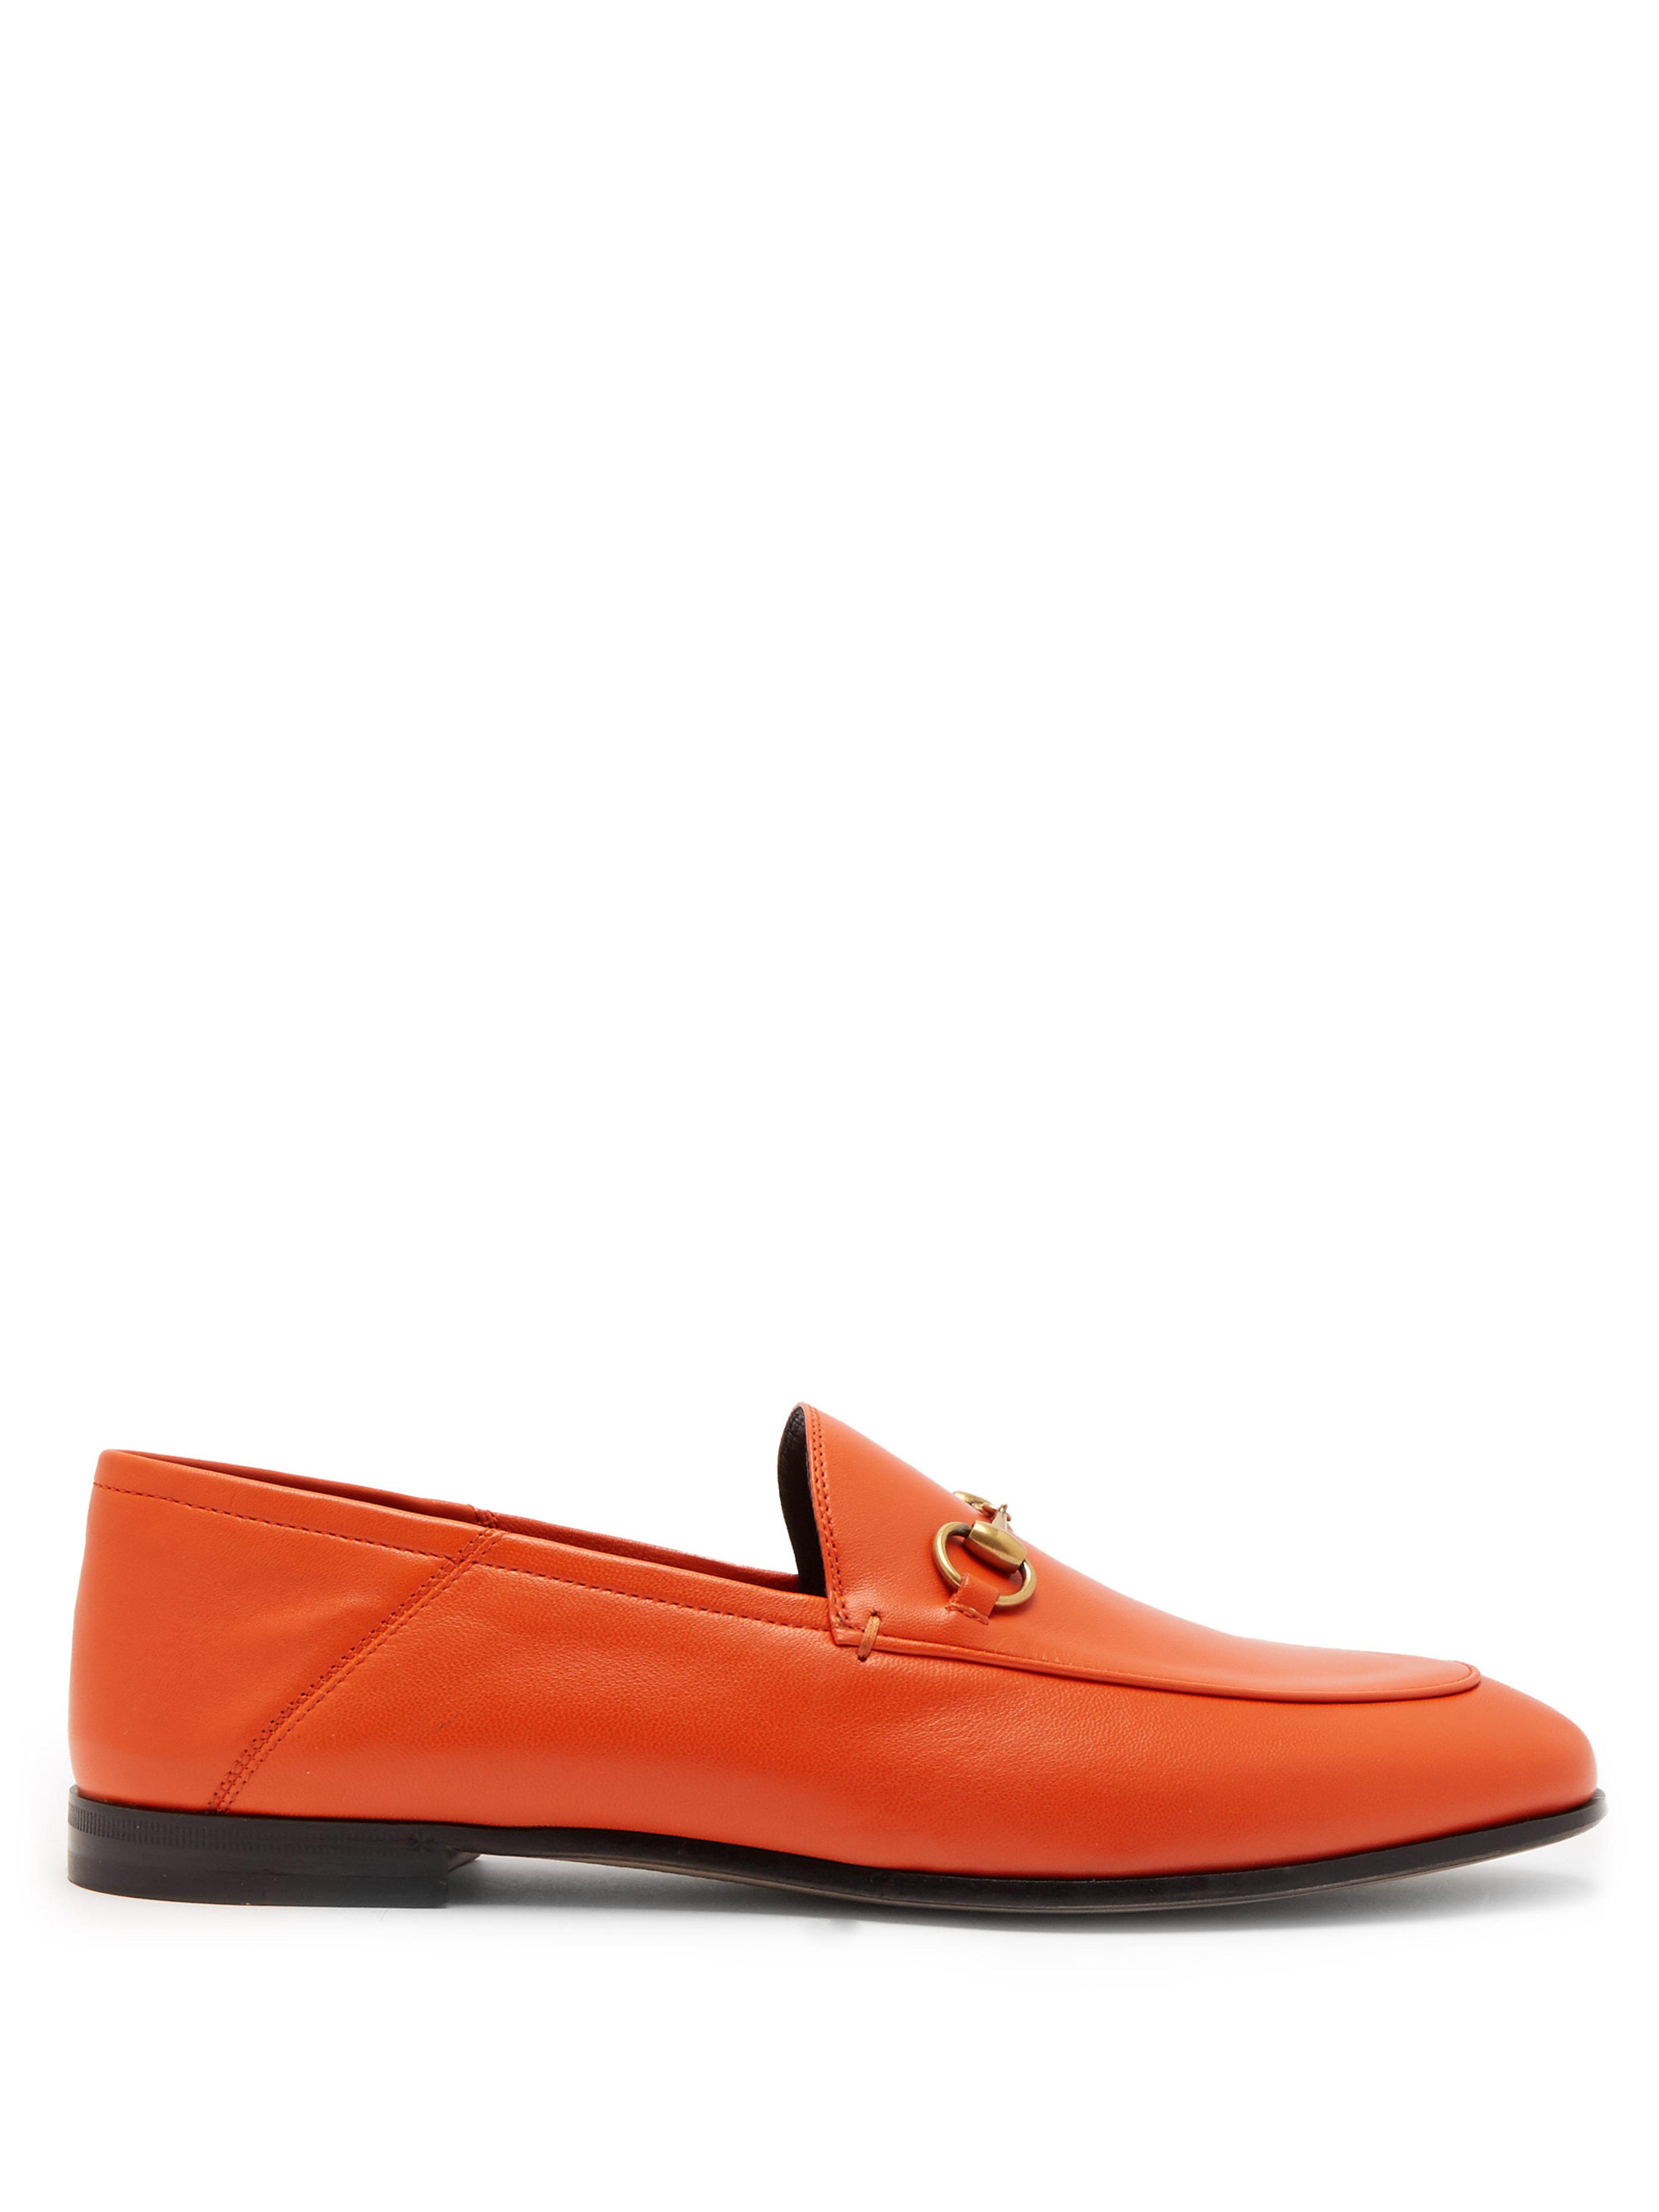 2890a2cfe3d Gucci Brixton Collapsible Heel Leather Loafers in Orange - Lyst